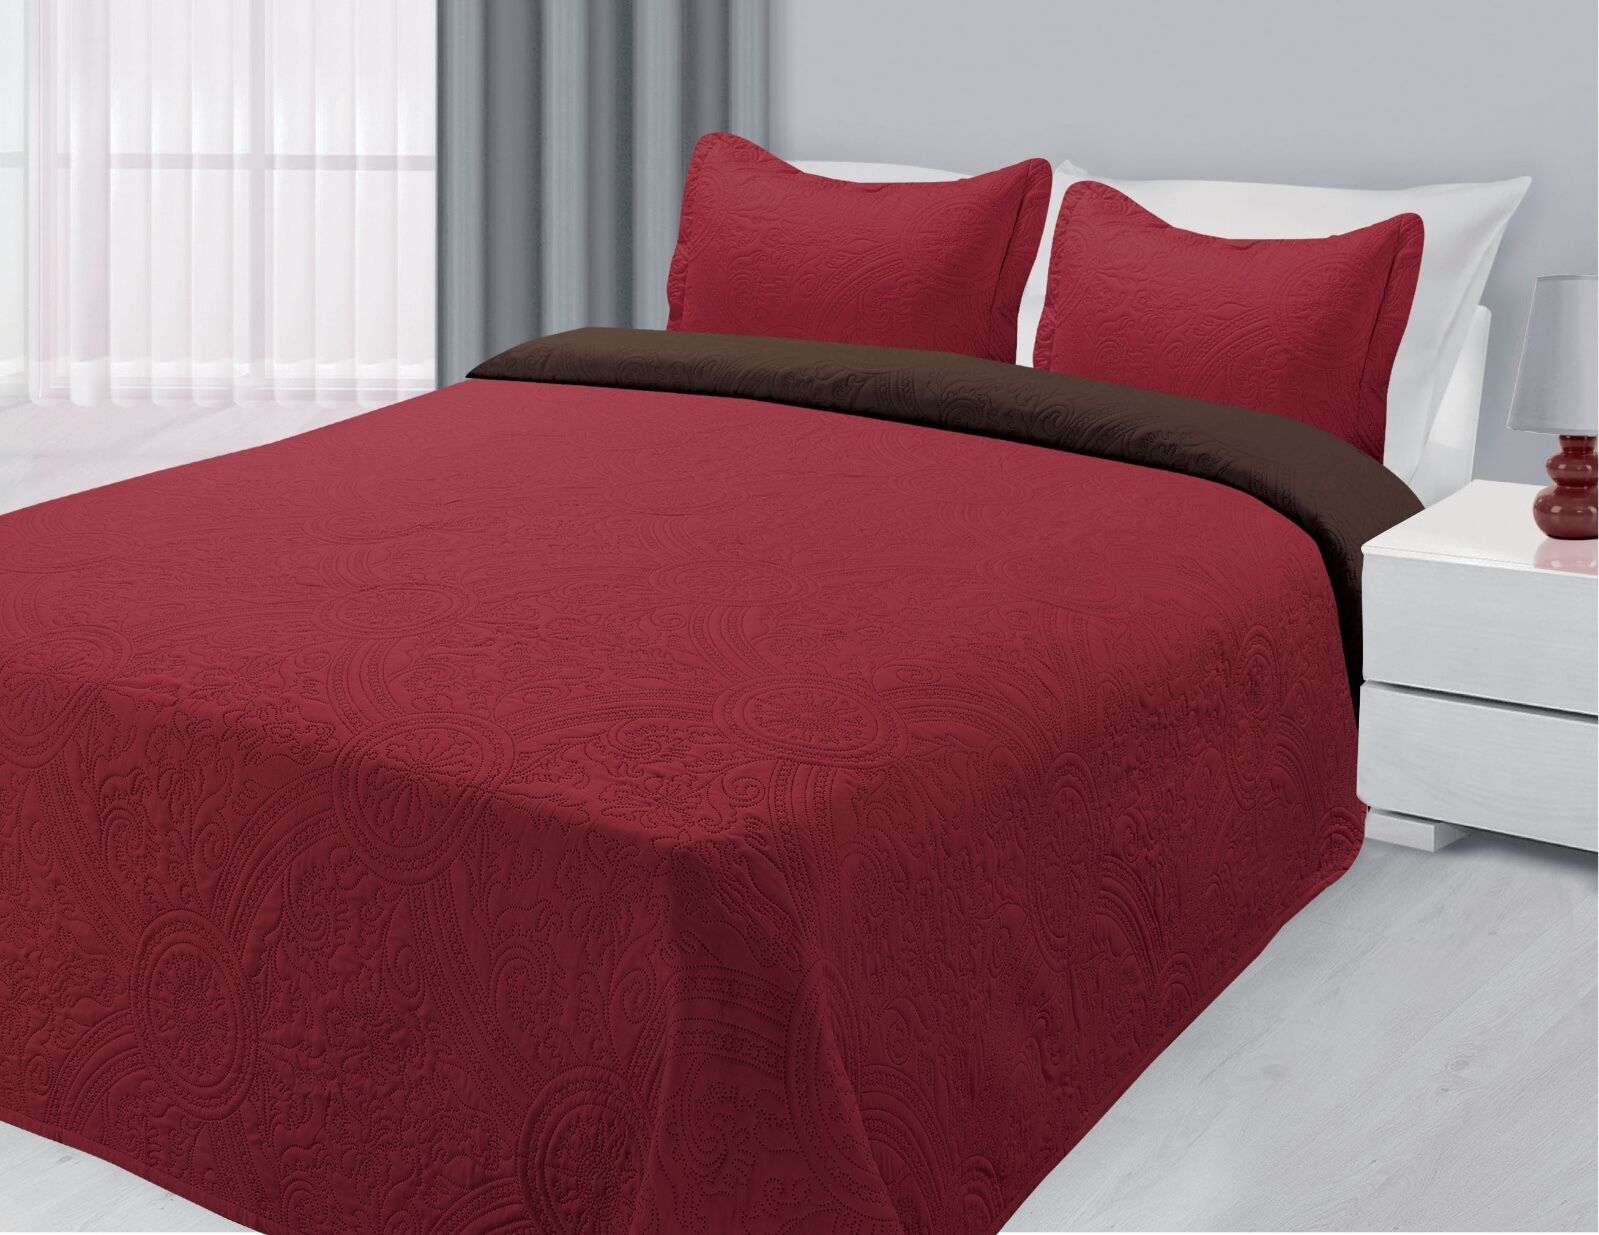 Reversible 3-Piece Solid Quilted Bedspread Coverlet Bedding Set - Burgundy & Brown